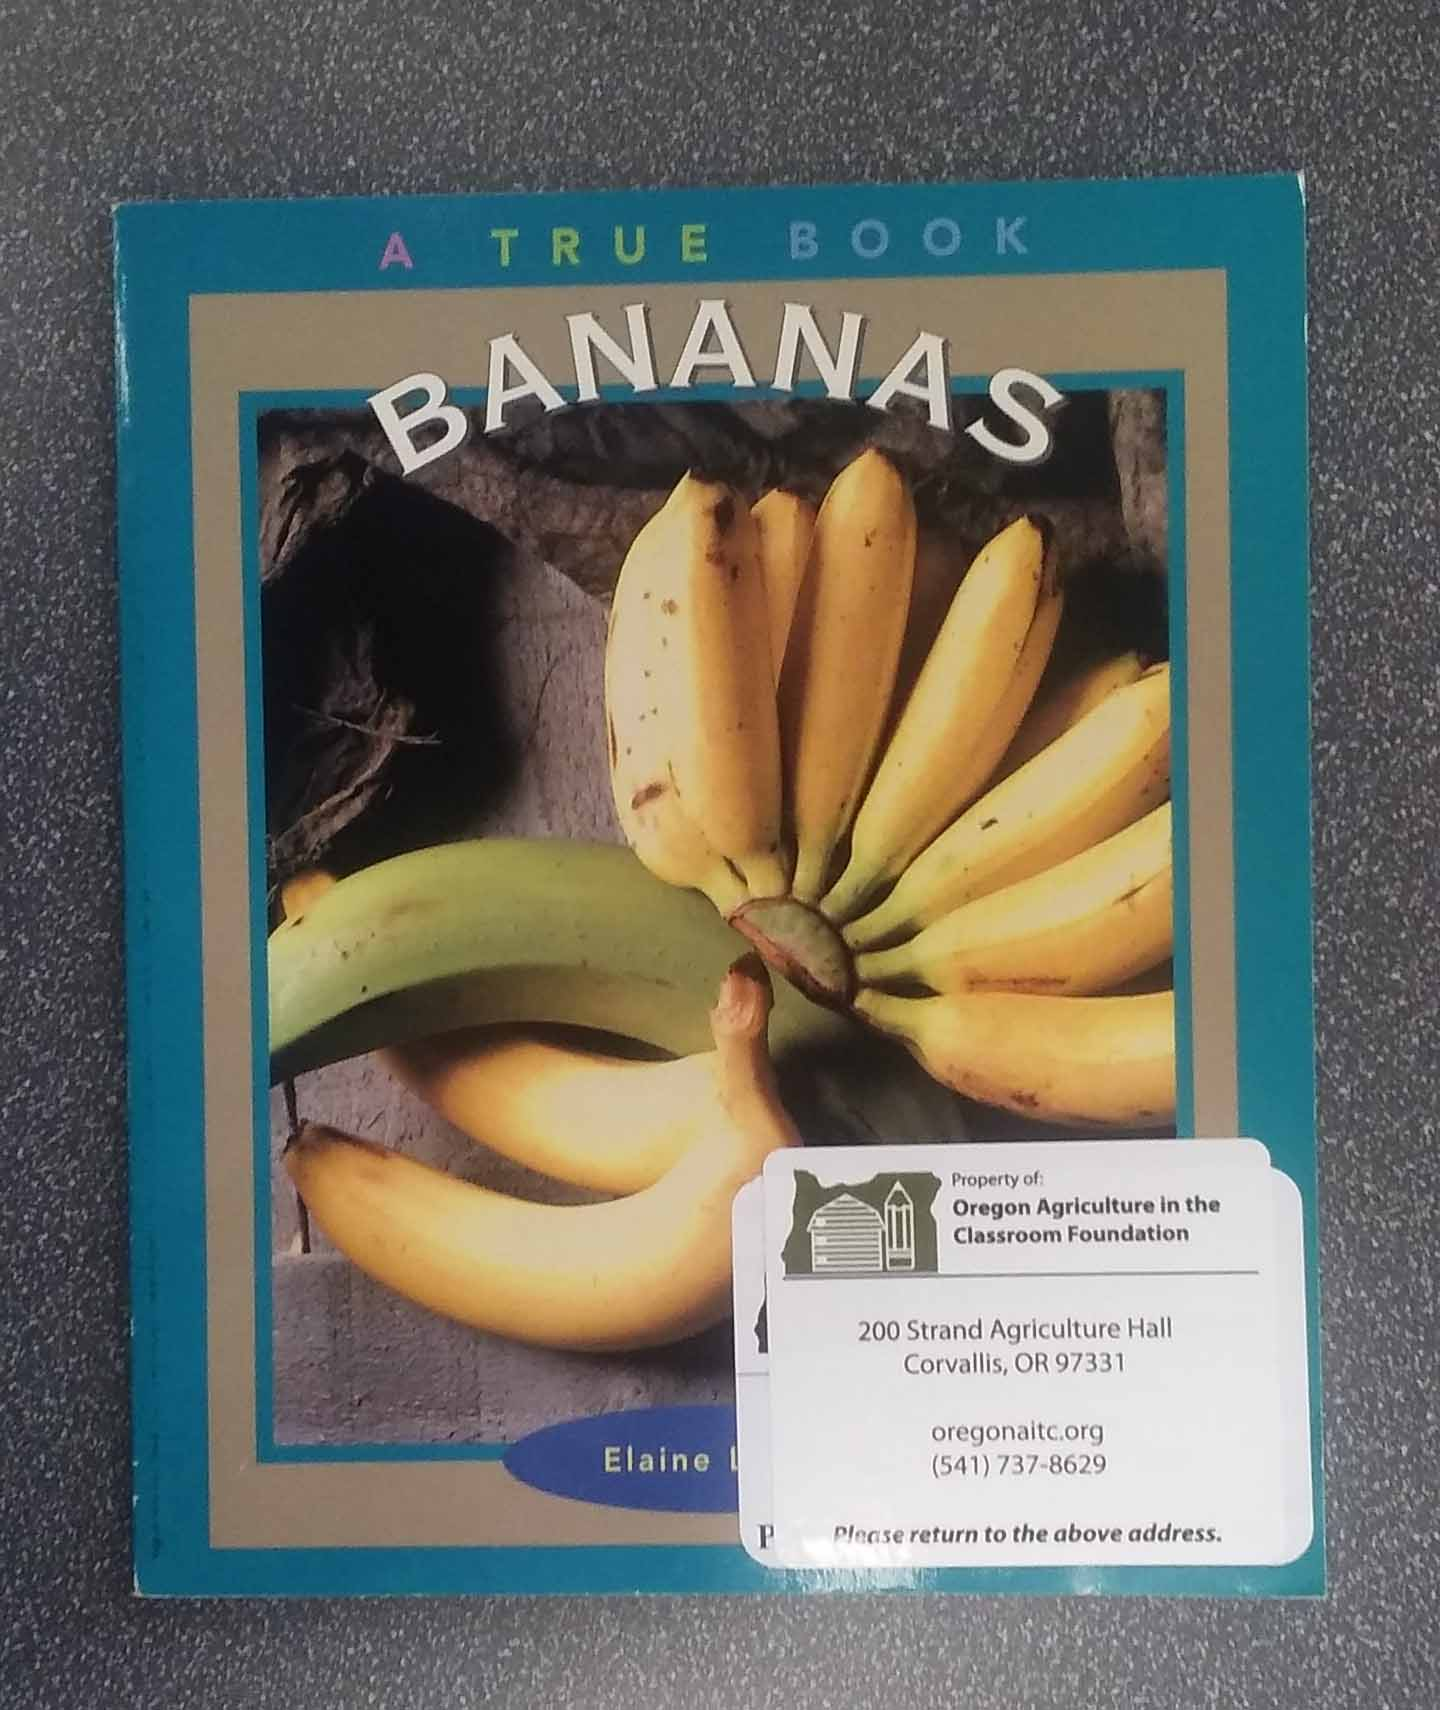 6997Bananas - A True Book